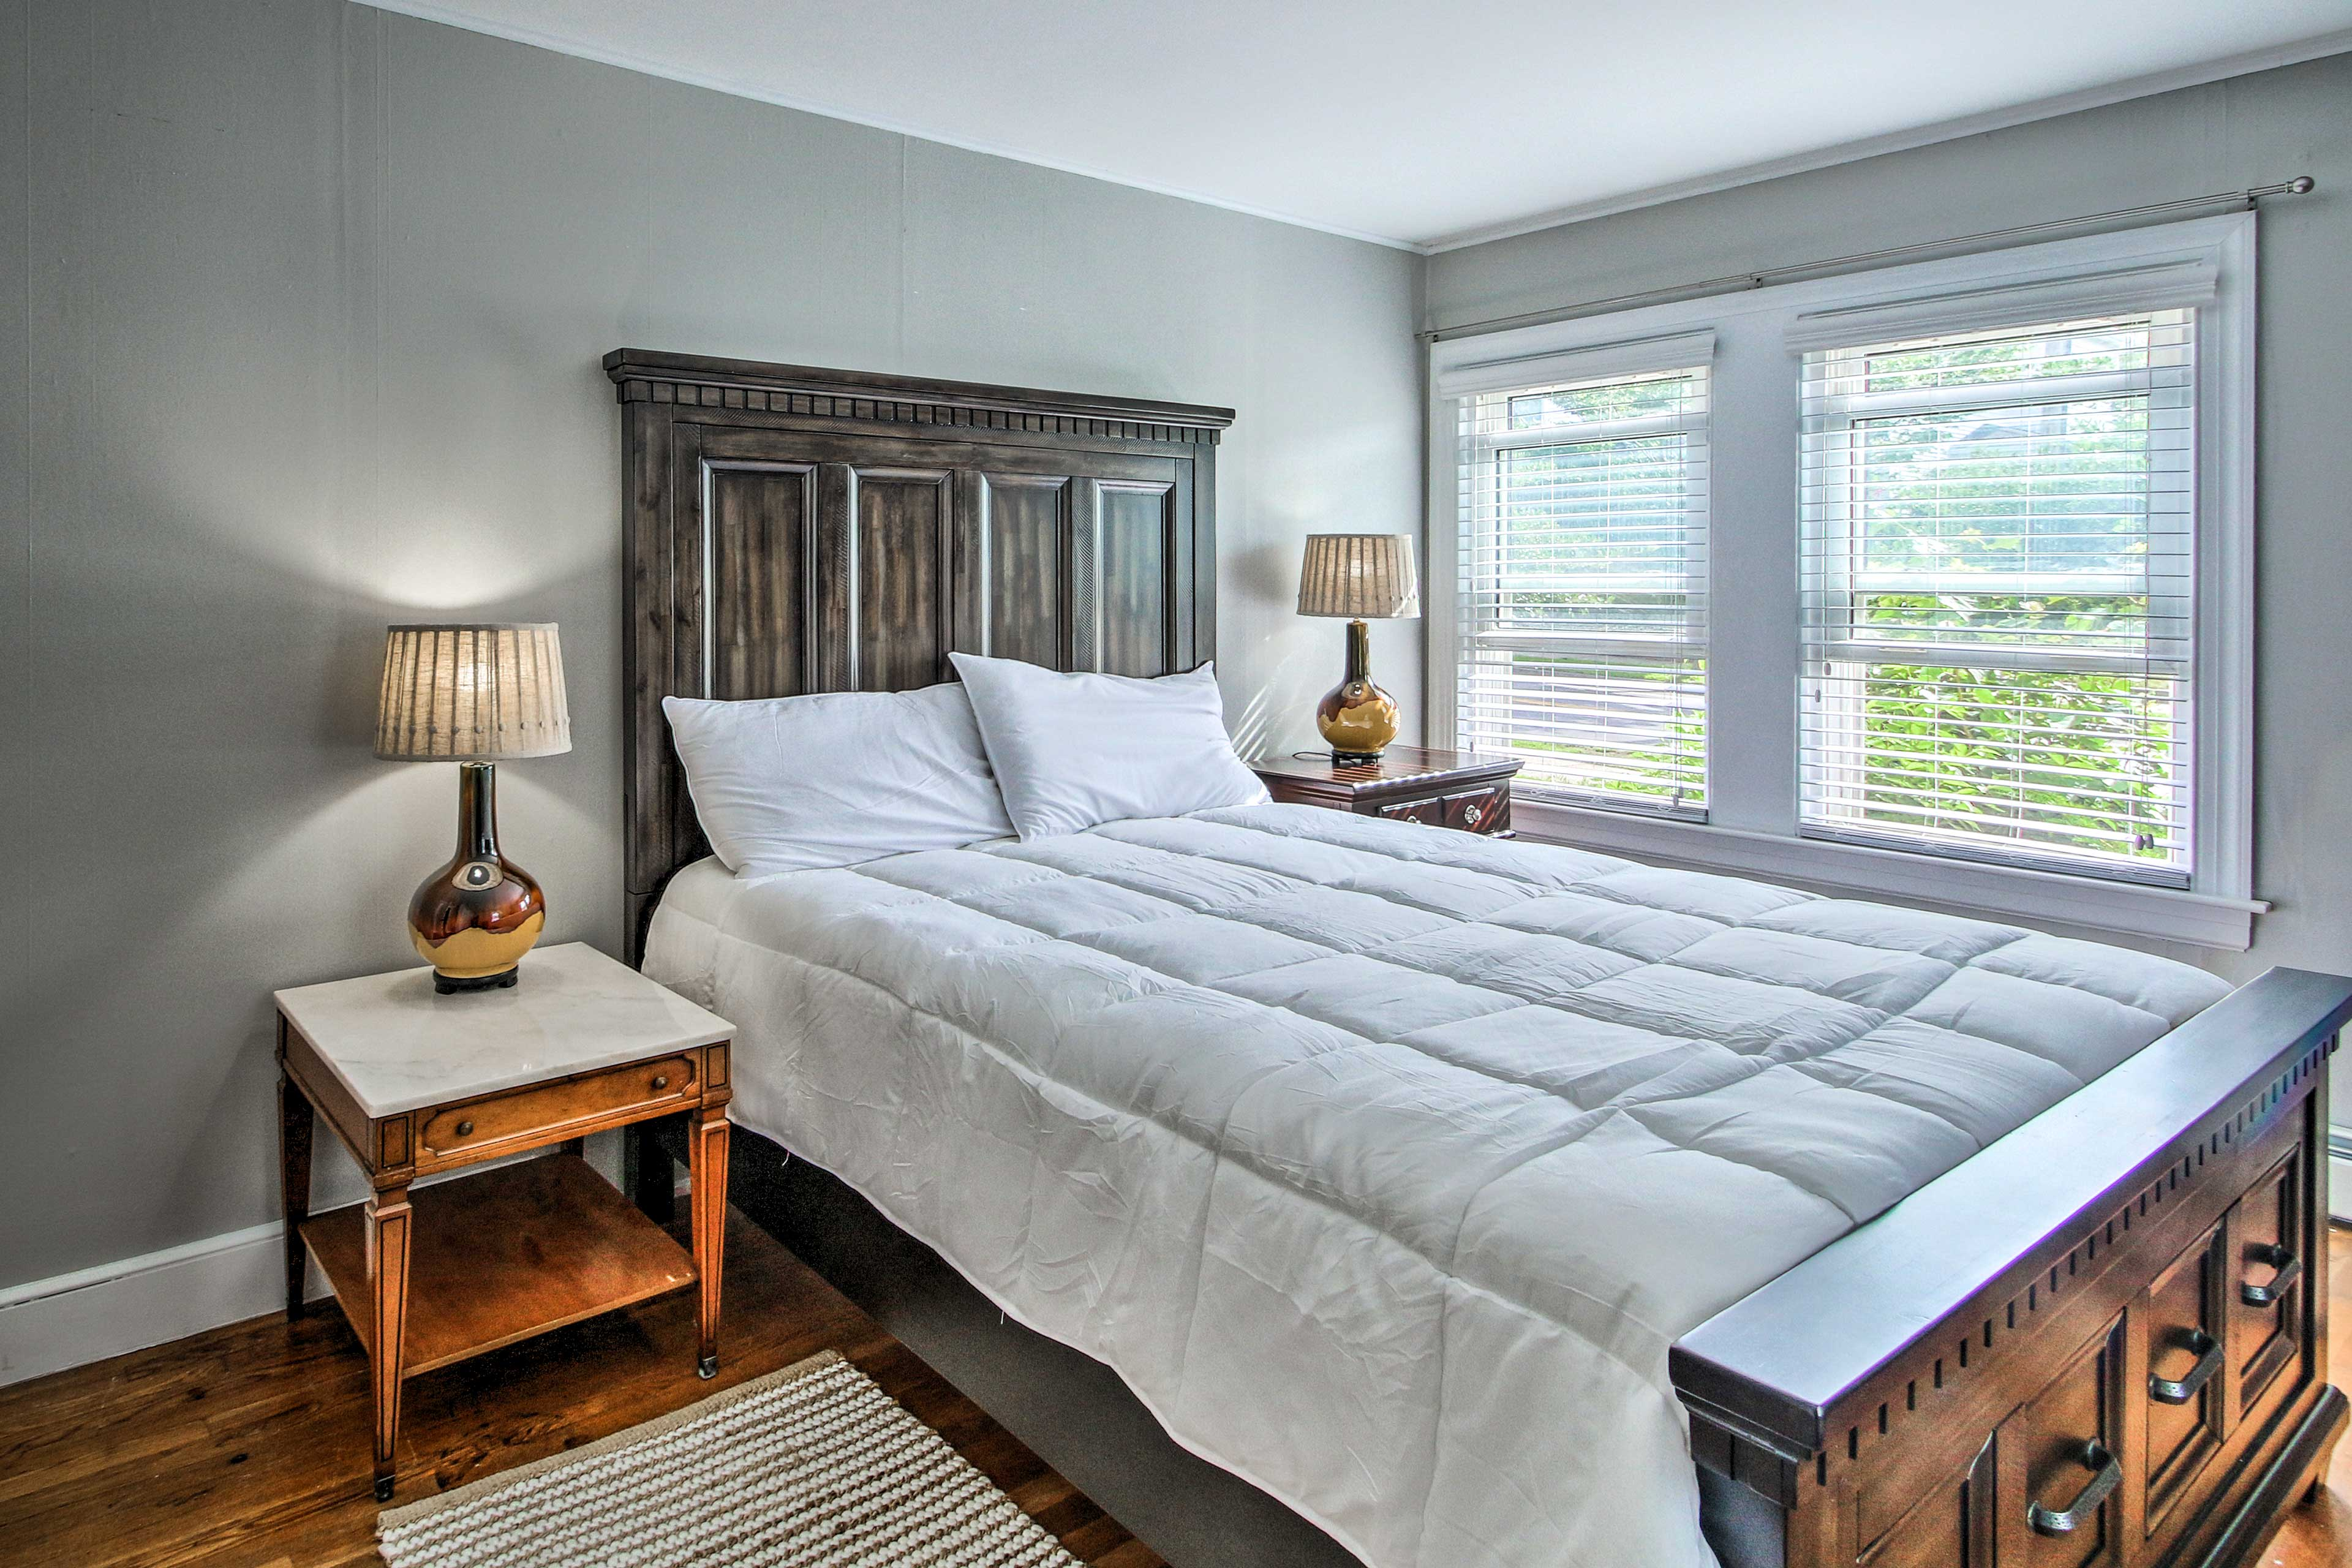 There are a total of 5 bedrooms in this home - the fourth room has a queen bed.